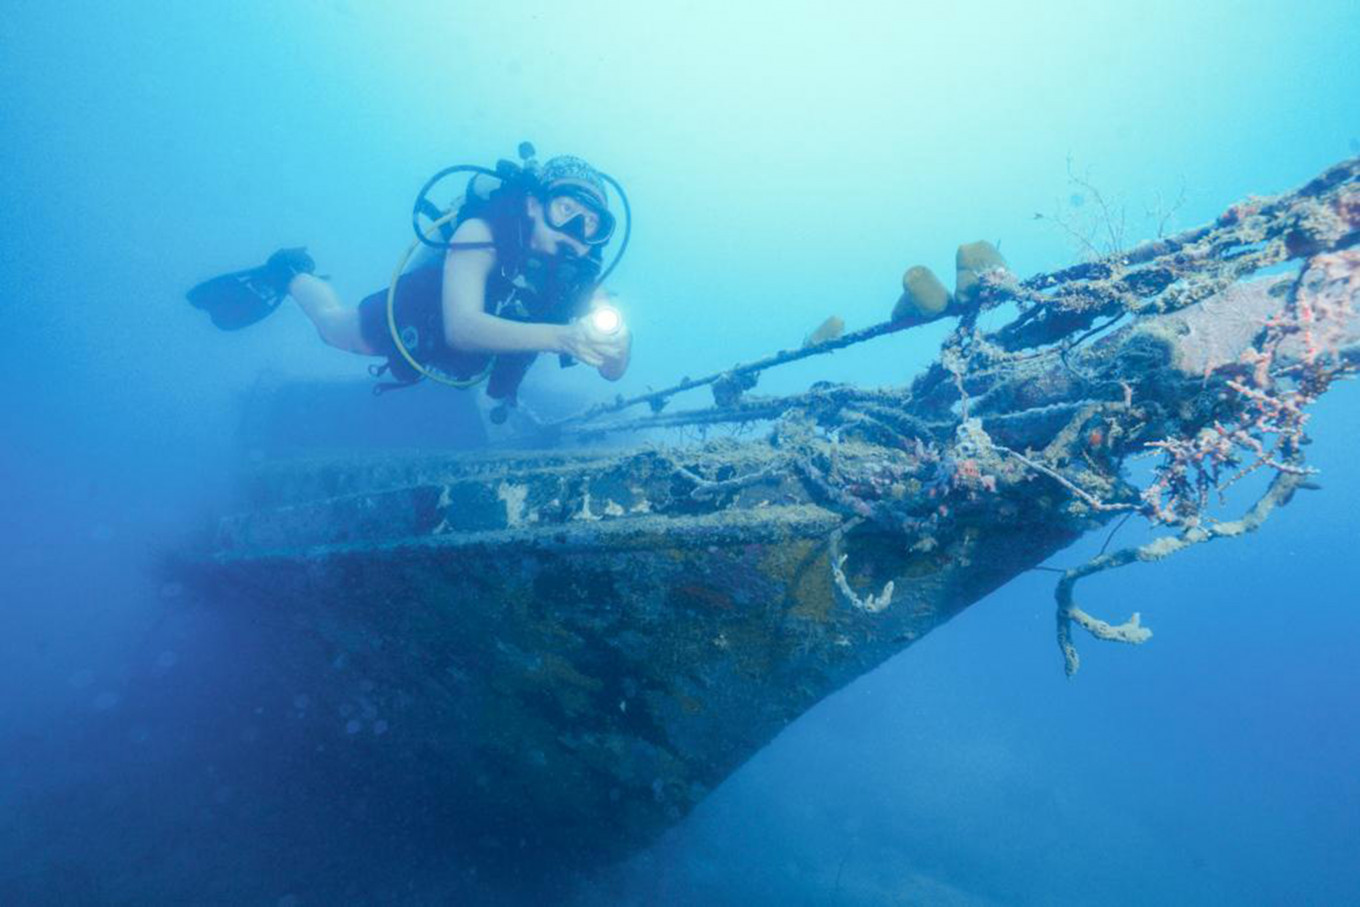 Diving safely amid the pandemic